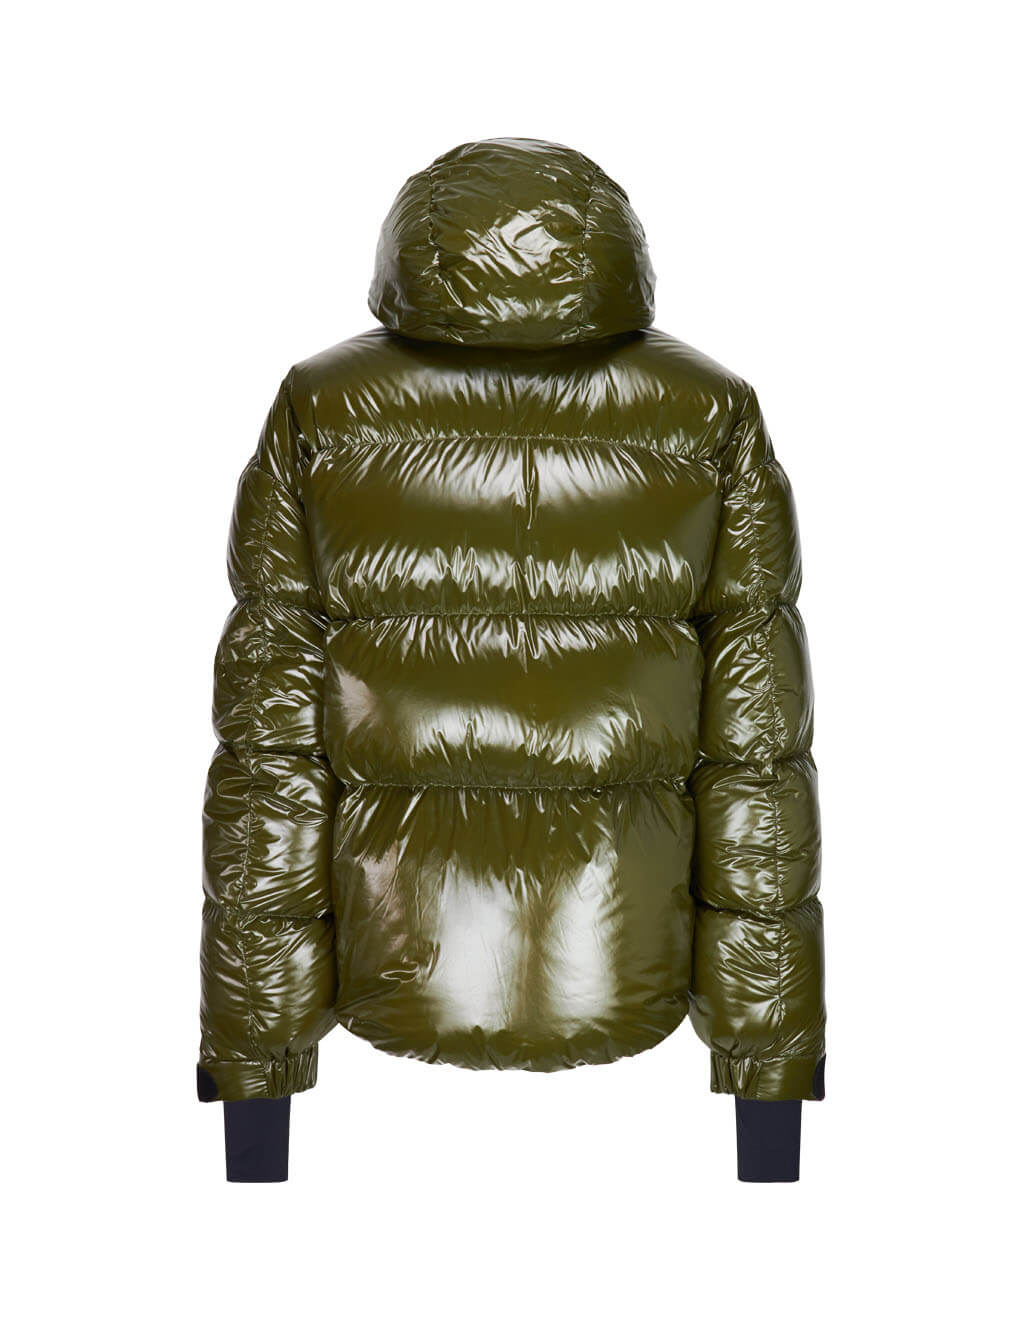 Moncler Grenoble Men's Green Bruil Field Jacket 0971B50700539FT81A